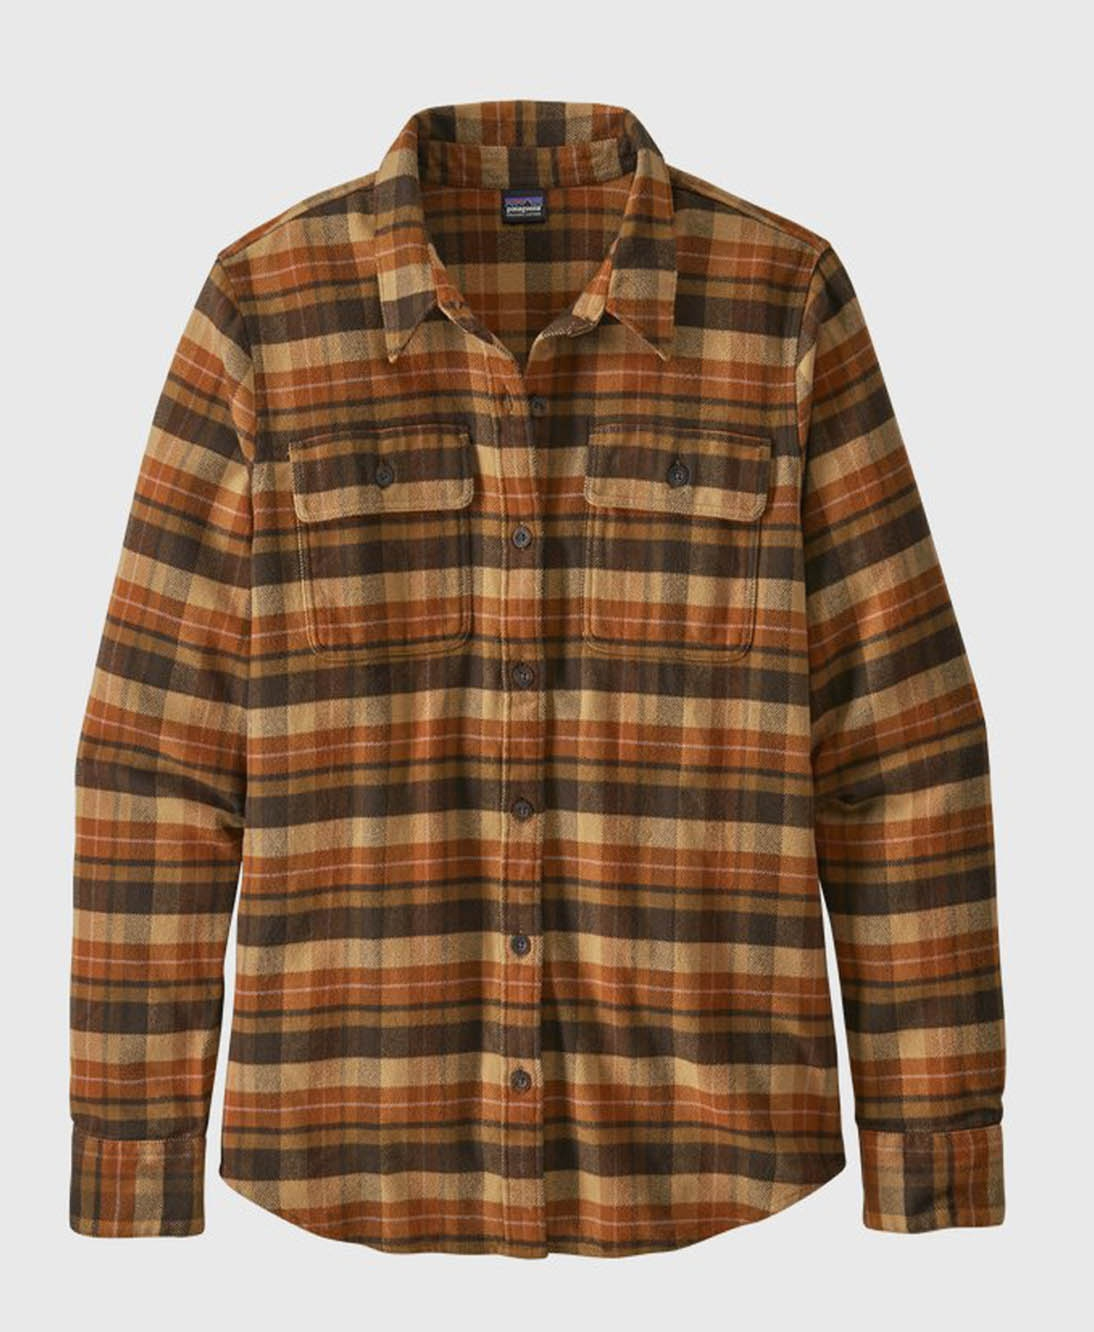 Patagonia - W's L/S Fjord Flannel Shirt